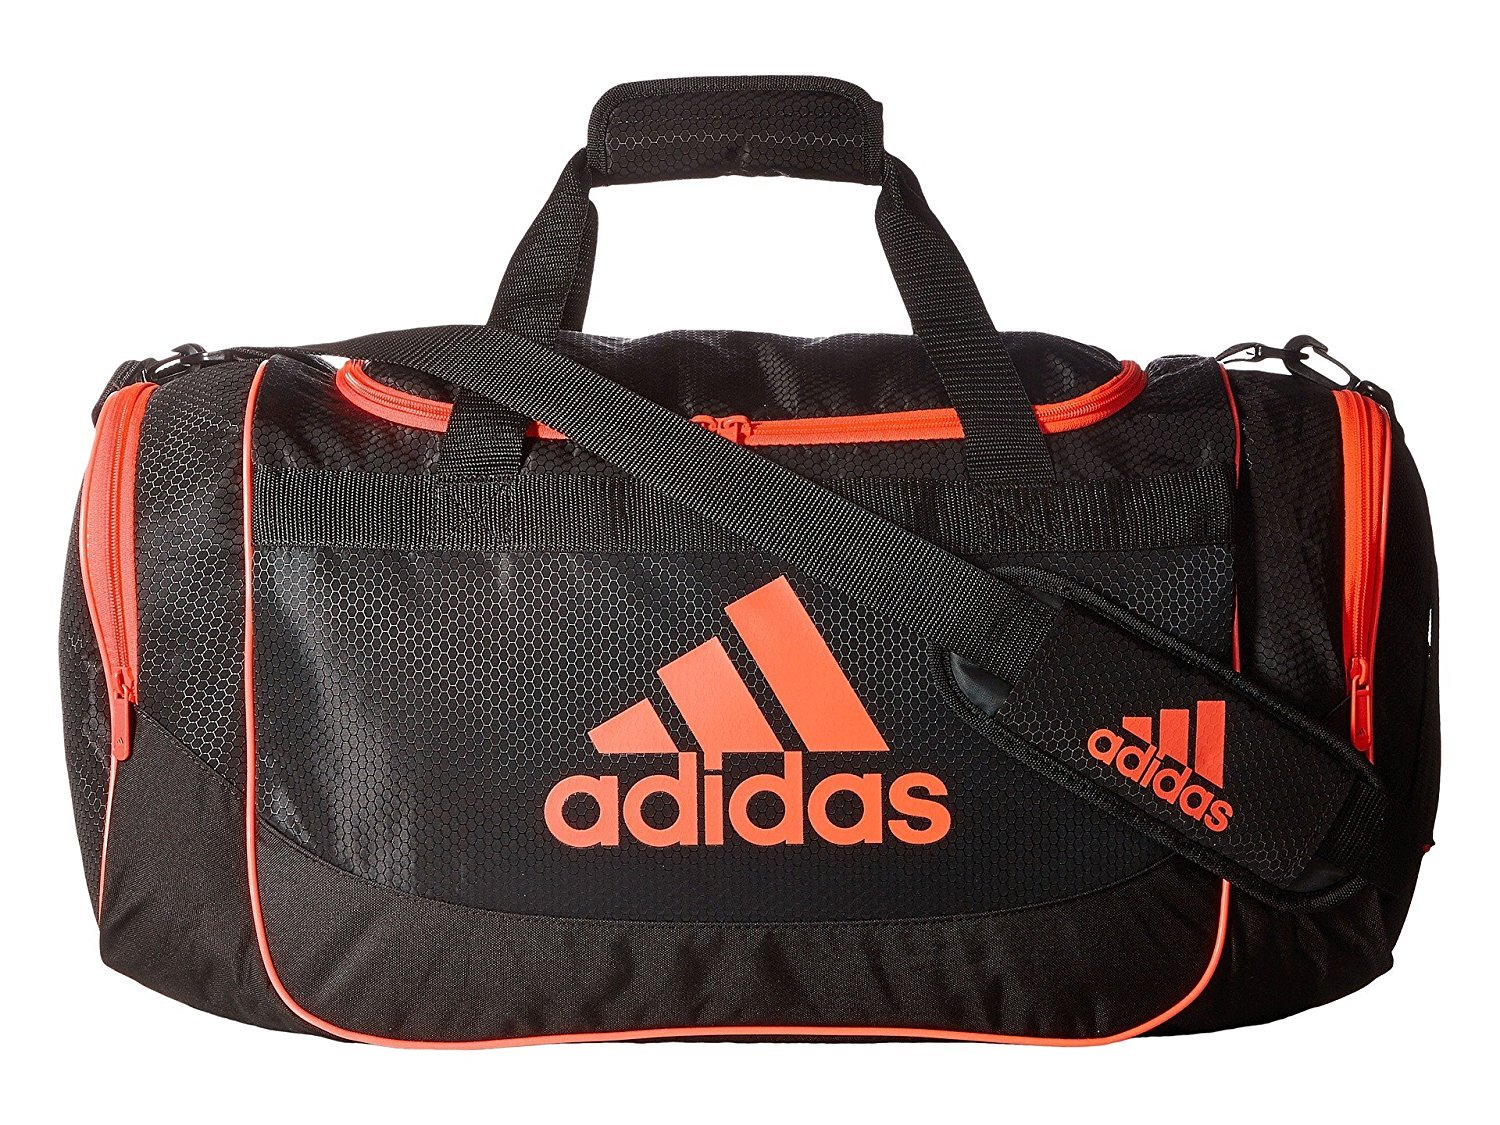 7981a79005d9 Adidas Duffels & Sport Bags discounted Sale – Recipes with More